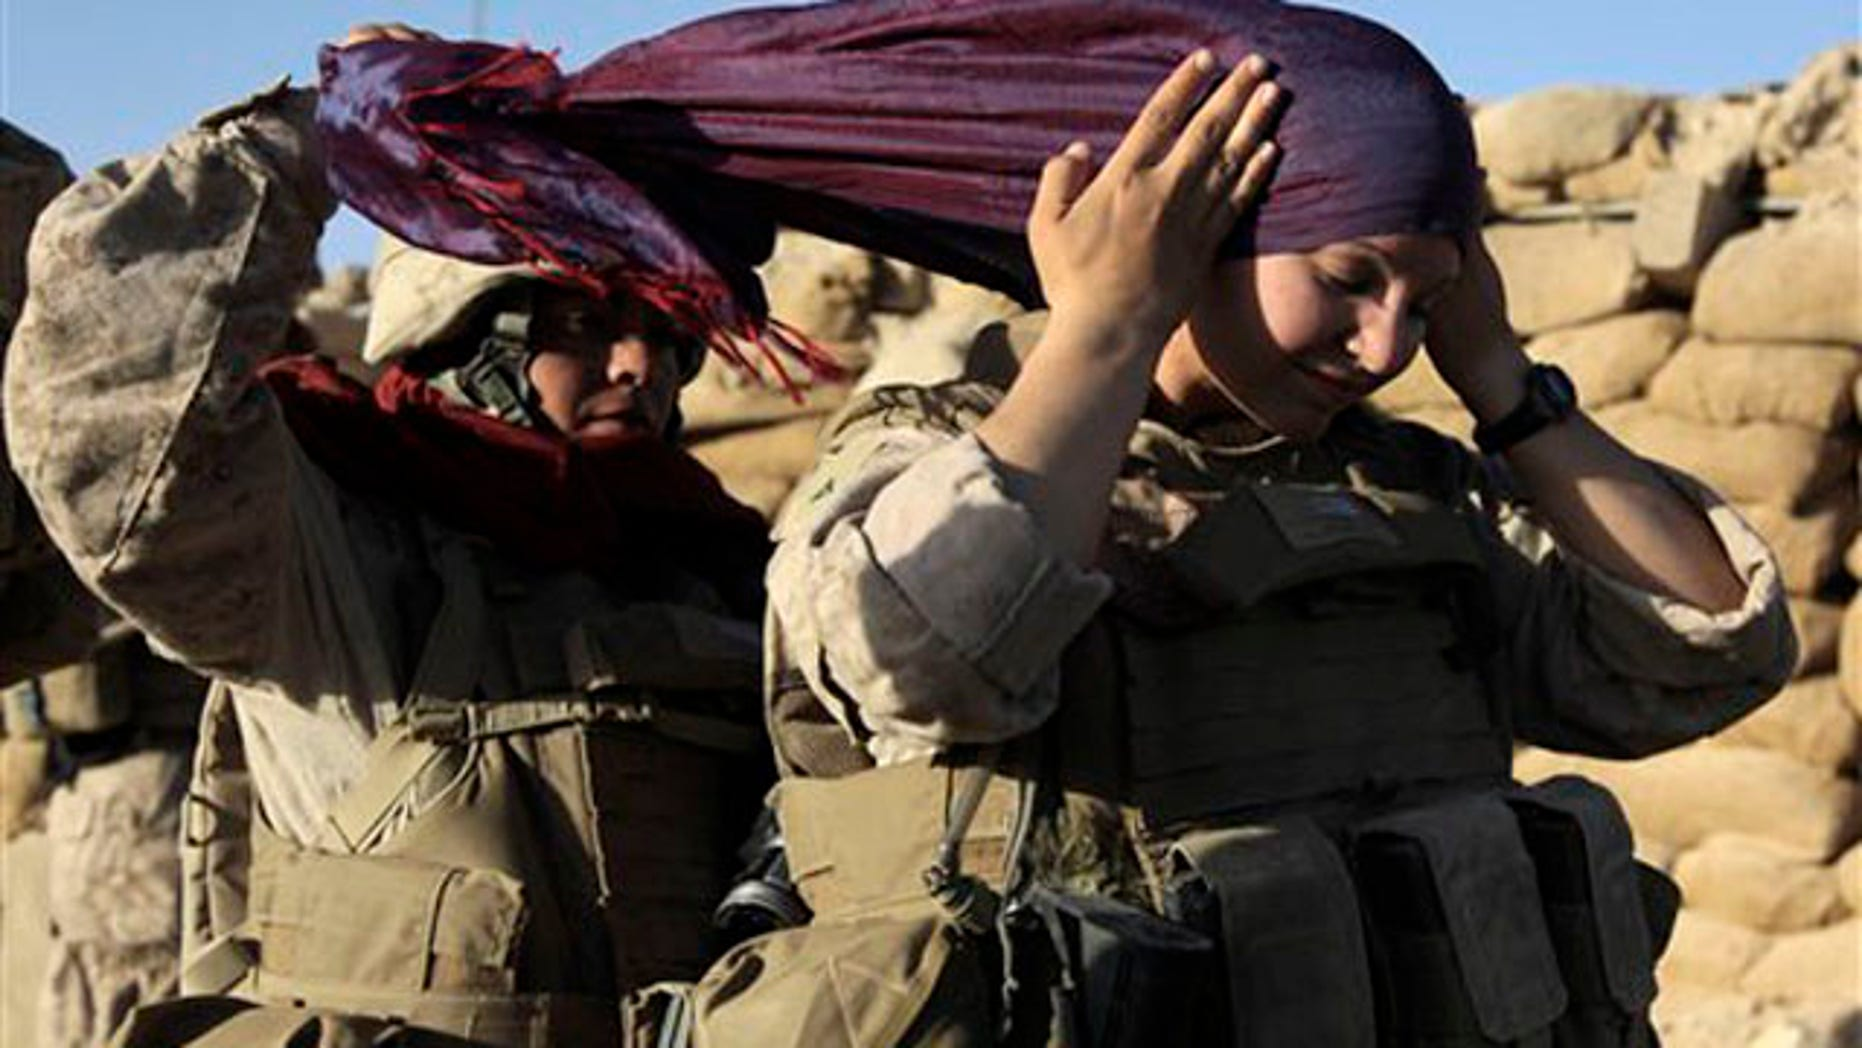 FILE - In this photo, U.S. Marine Sgt. Monica Perez, of San Diego, left, helps Lance Cpl. Mary Shloss of Hammond, Ind. put on her head scarf before heading out on a patrol with Golf Company, 2nd Batallion, 3rd Regiment of the 2nd MEB, 2nd MEF, in the village of Khwaja Jamal in the Helmand Province of Afghanistan.